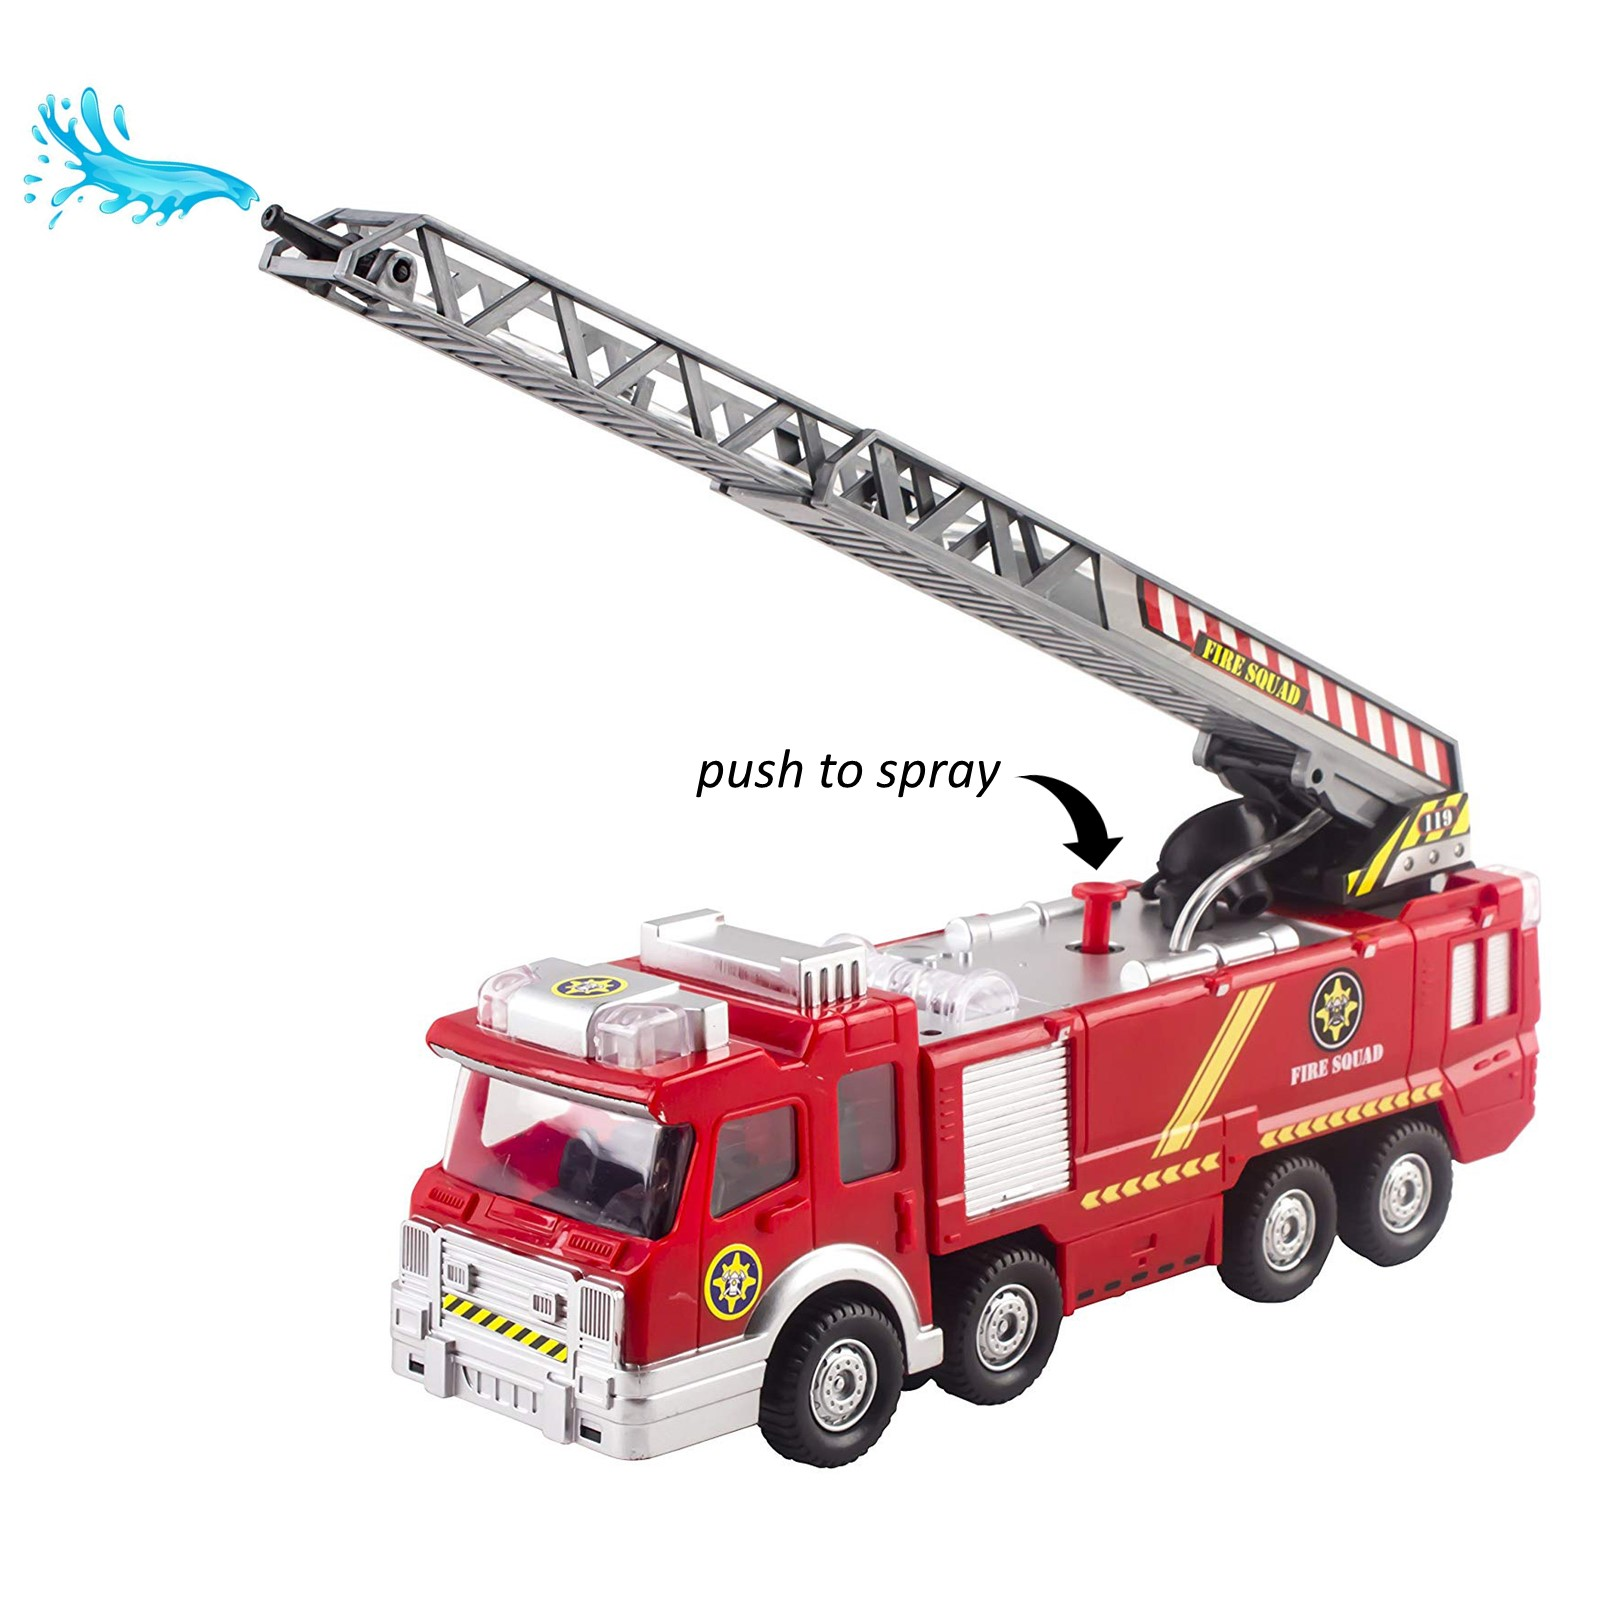 Extendin... Lights and Sirens Sounds Fire Truck Toy Rescue with Shooting Water